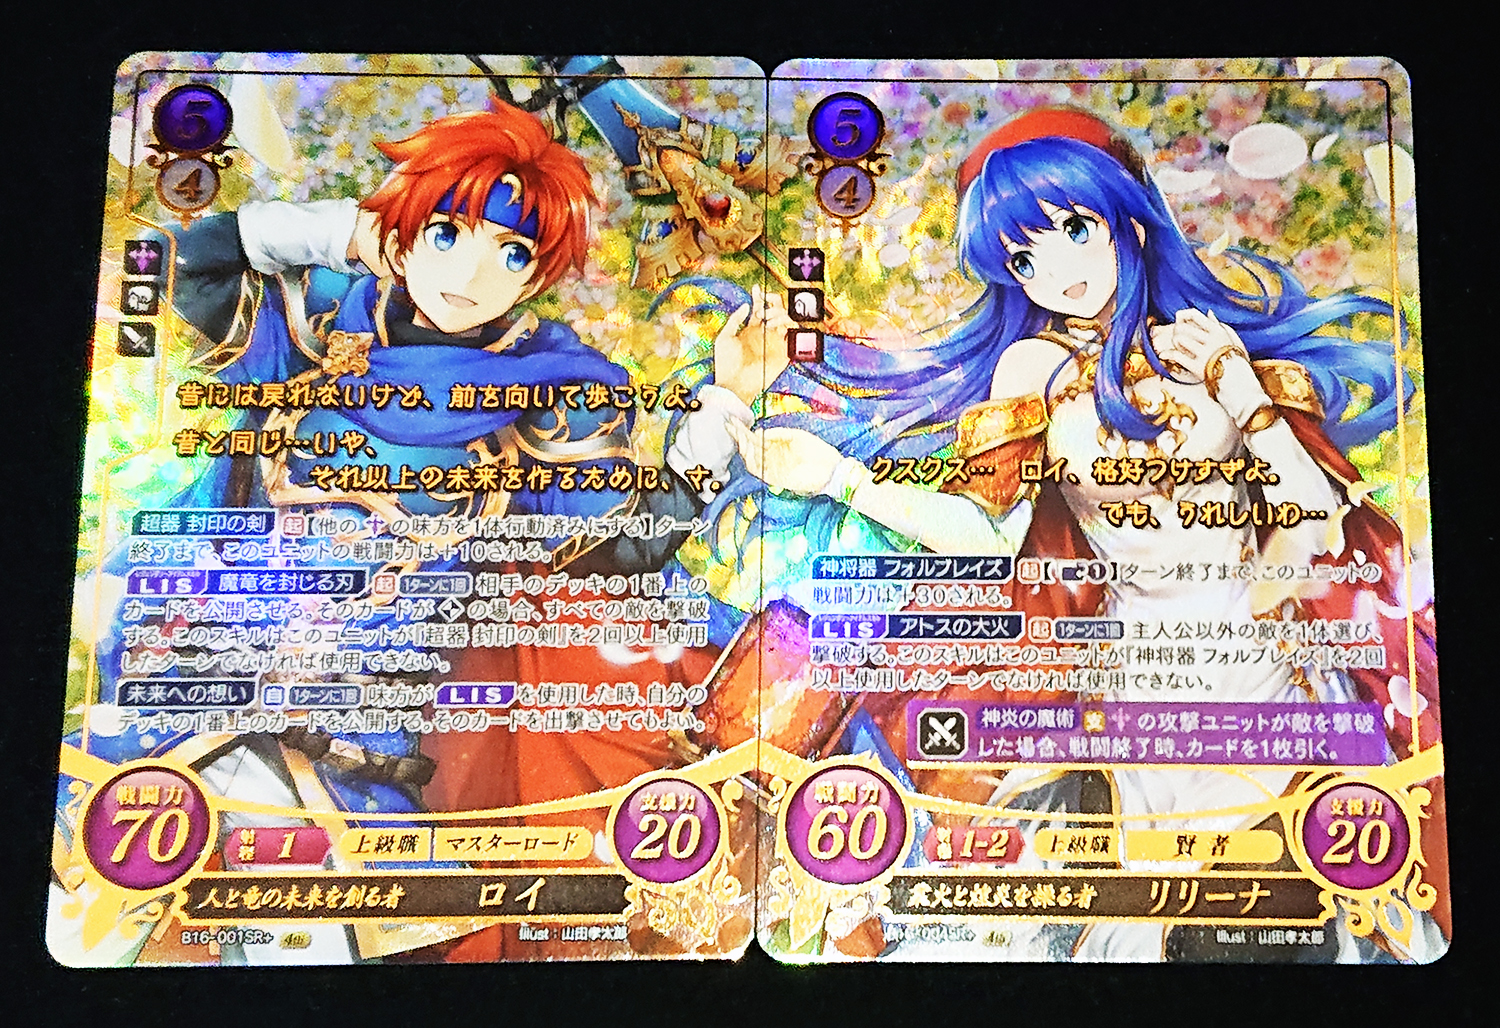 Fire Emblem Cipher Series 16 Release! - Serenes Forest